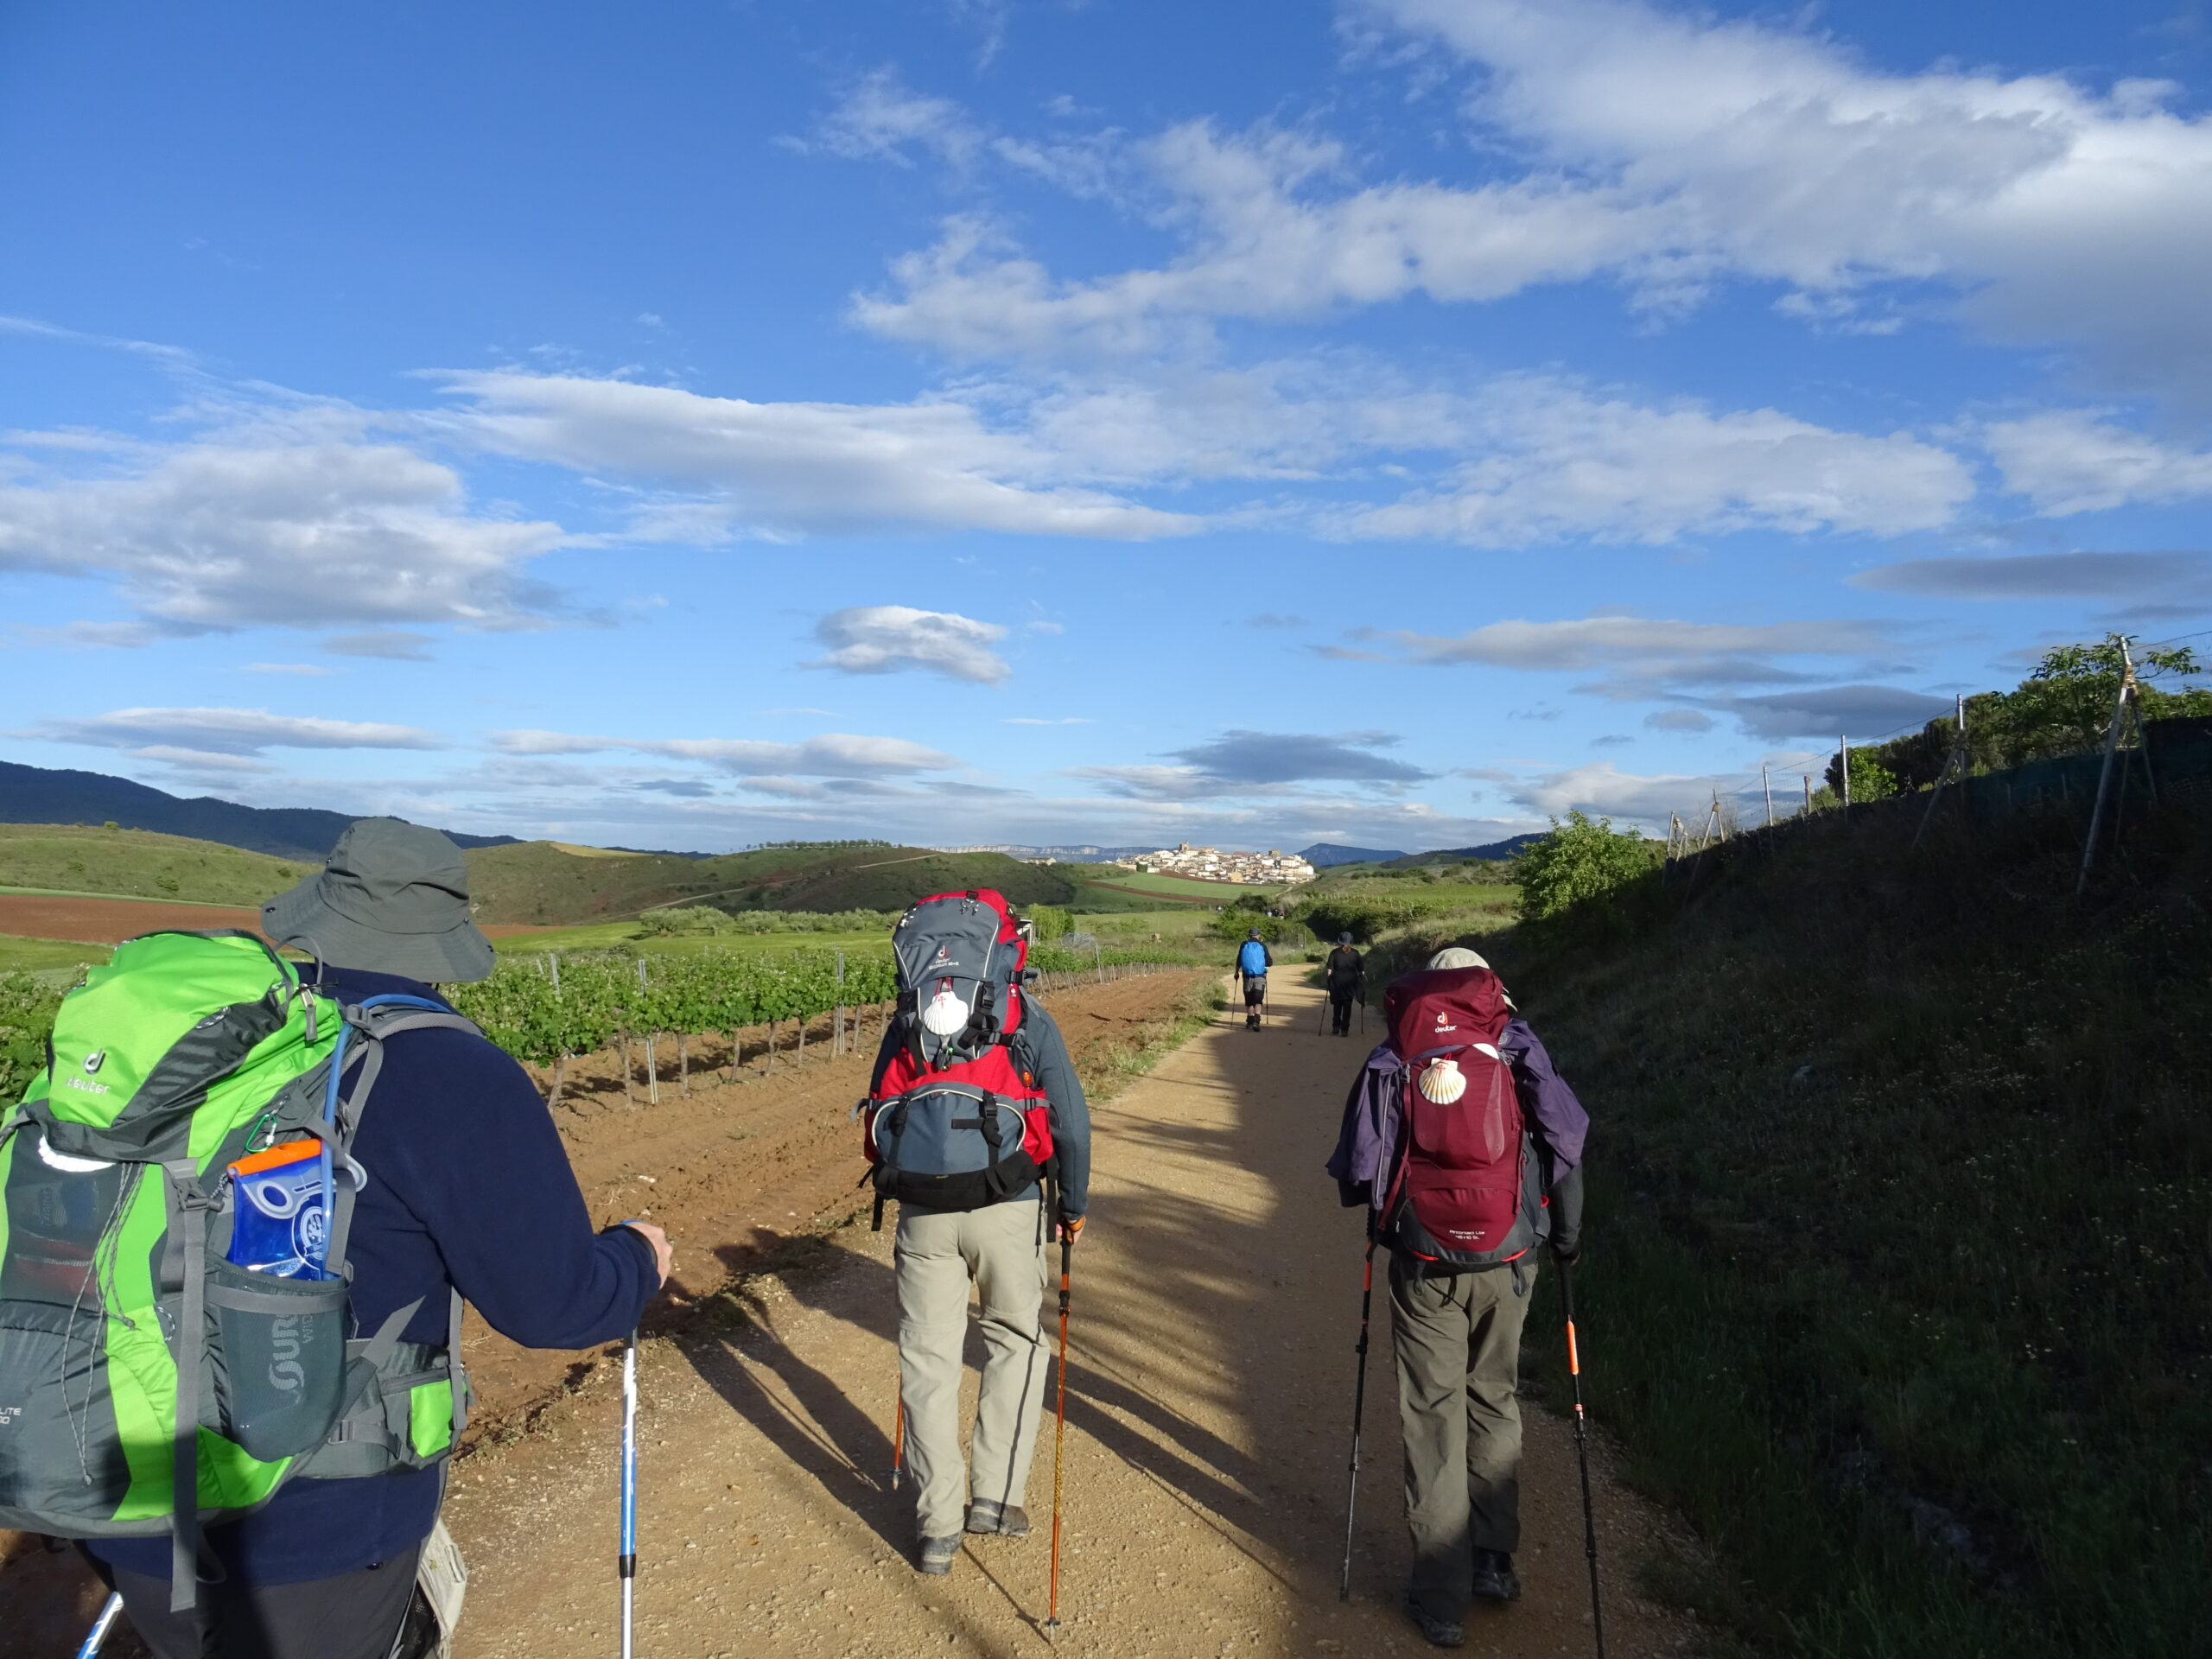 Three hikers on their way to Santiago de Compostela.